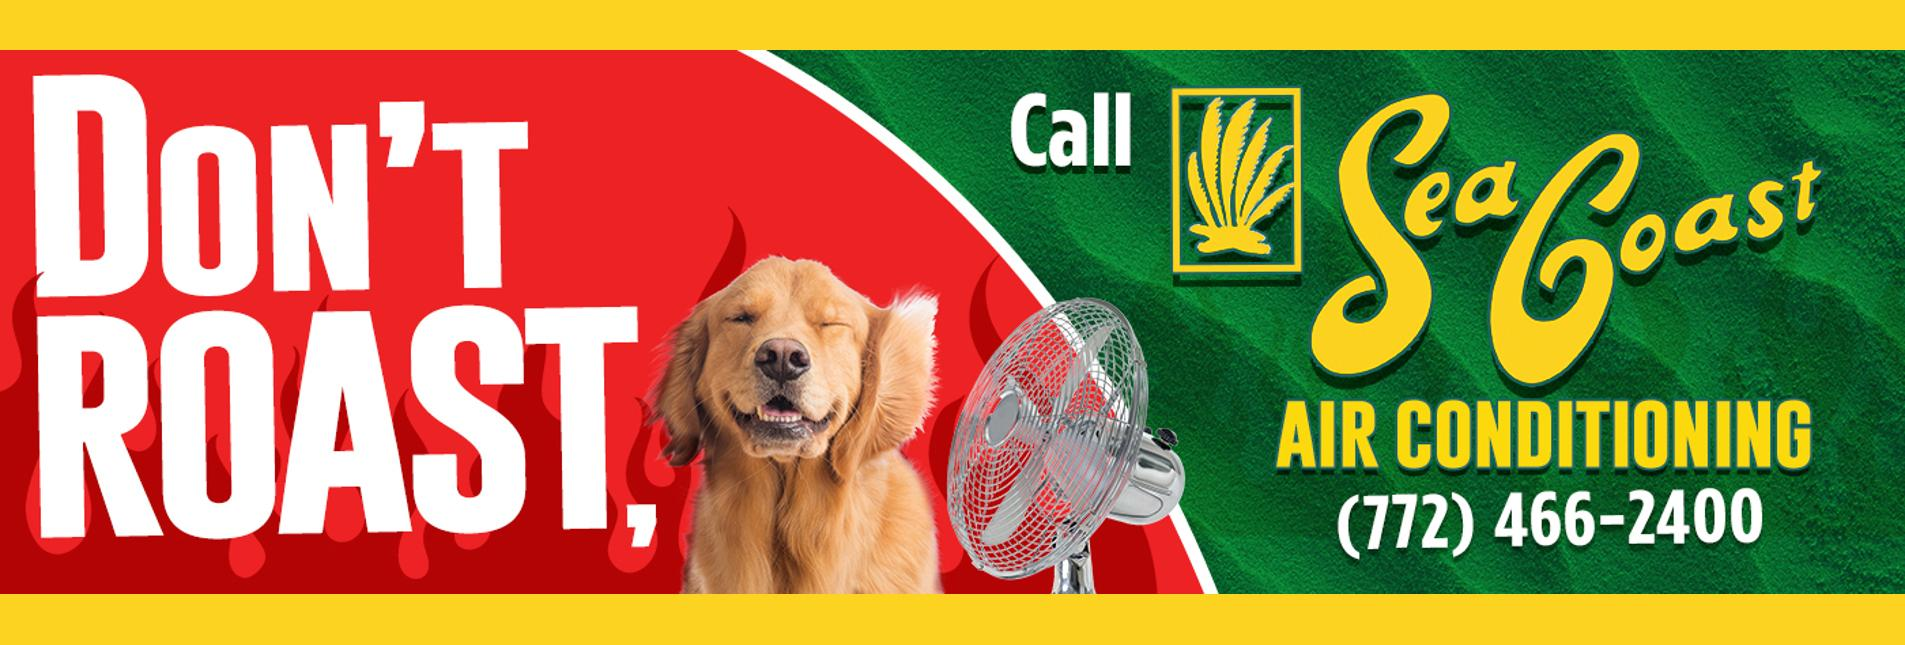 Call Sea Coast Air Conditioning Fort Pierce FL